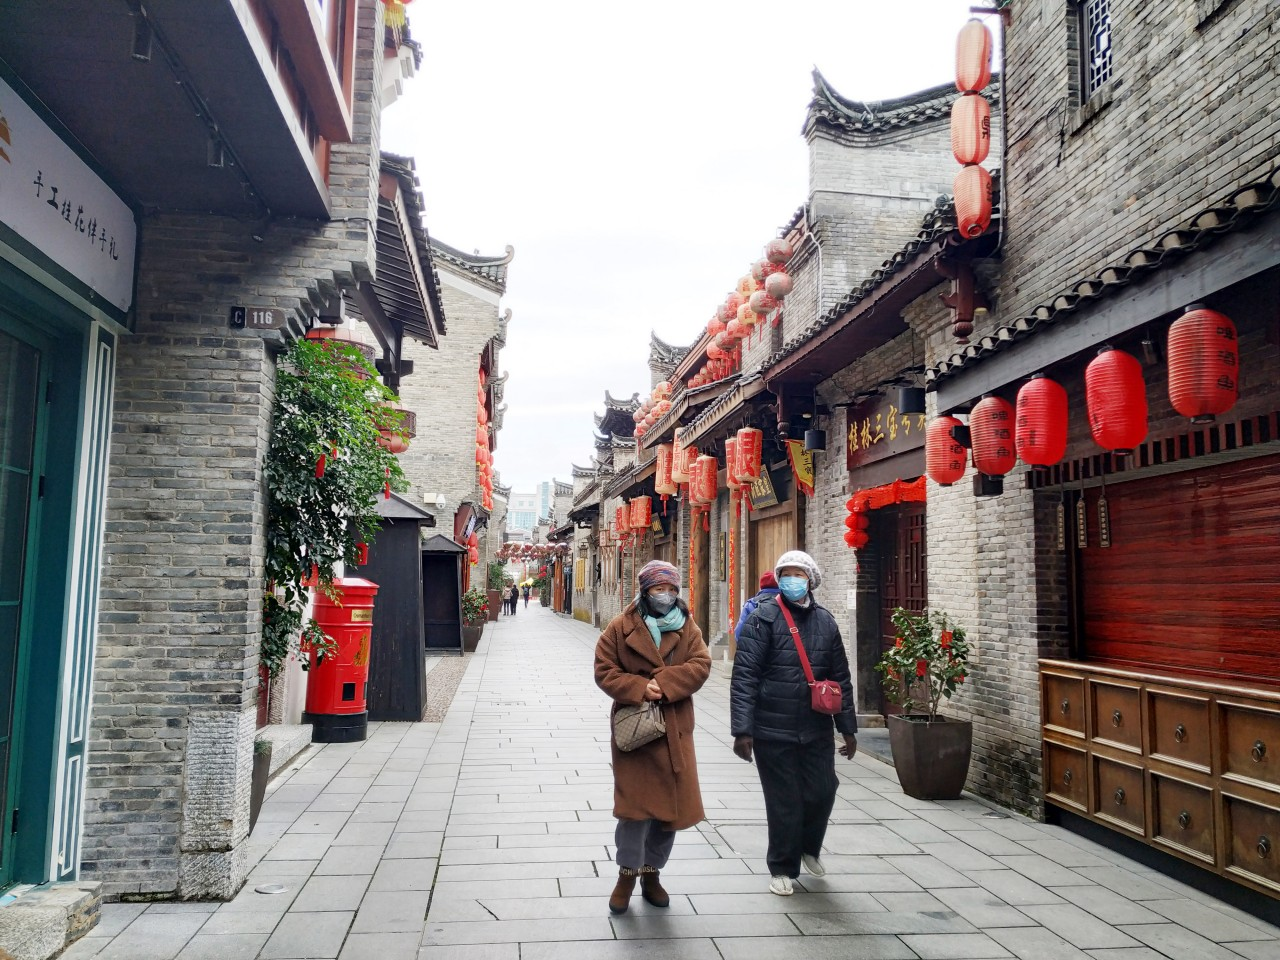 The health and political threats posed by the coronavirus outbreak is far more serious than SARS. In this photo taken in Guilin on the second day of the Chinese New Year (26 Jan), people are seen wearing masks on empty streets during an especially quiet festive season this year. (CNS)